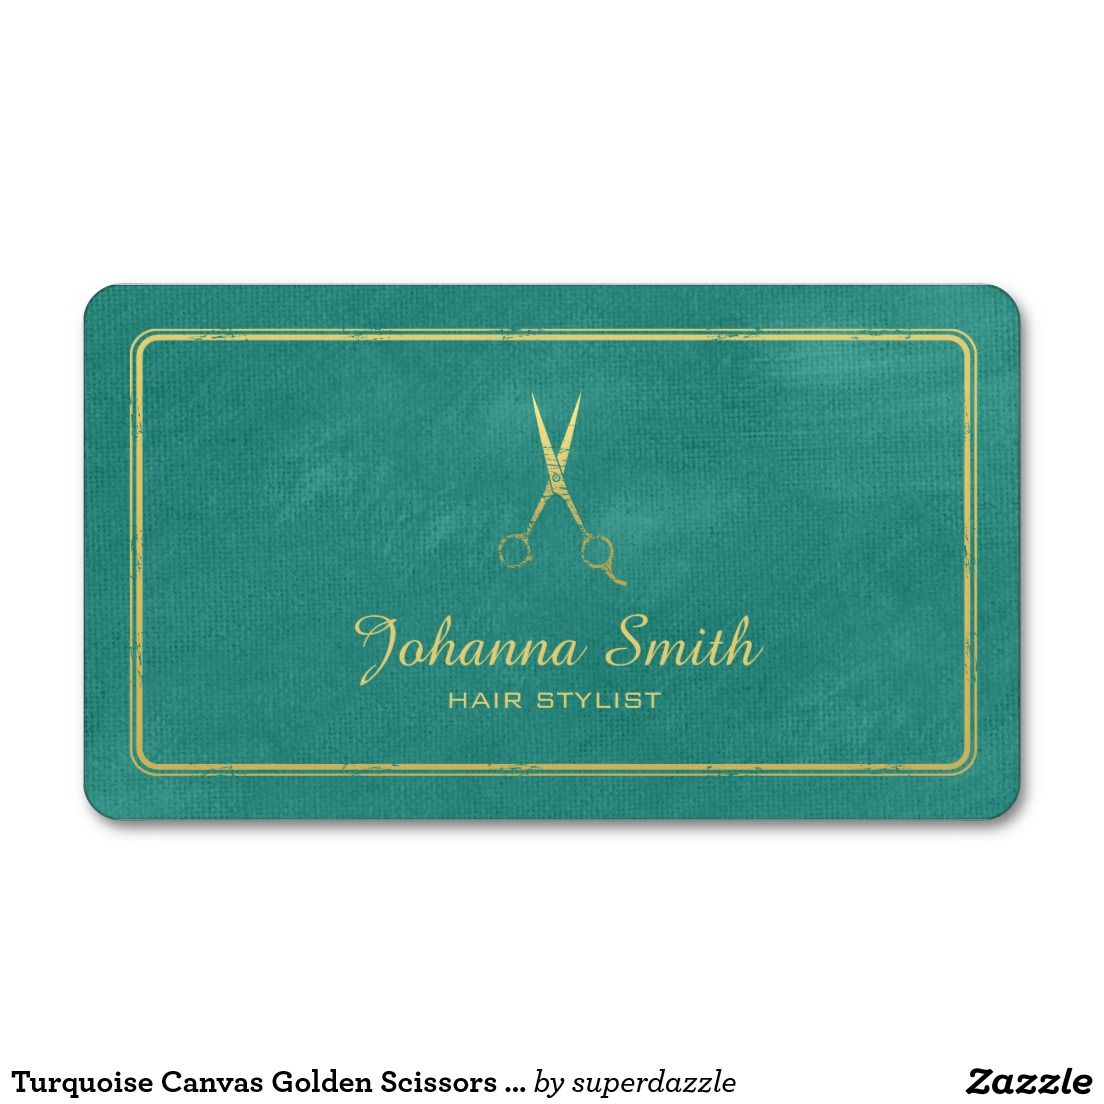 Turquoise Canvas Golden Scissors Hairstylist Business Card - Hair stylist business card template